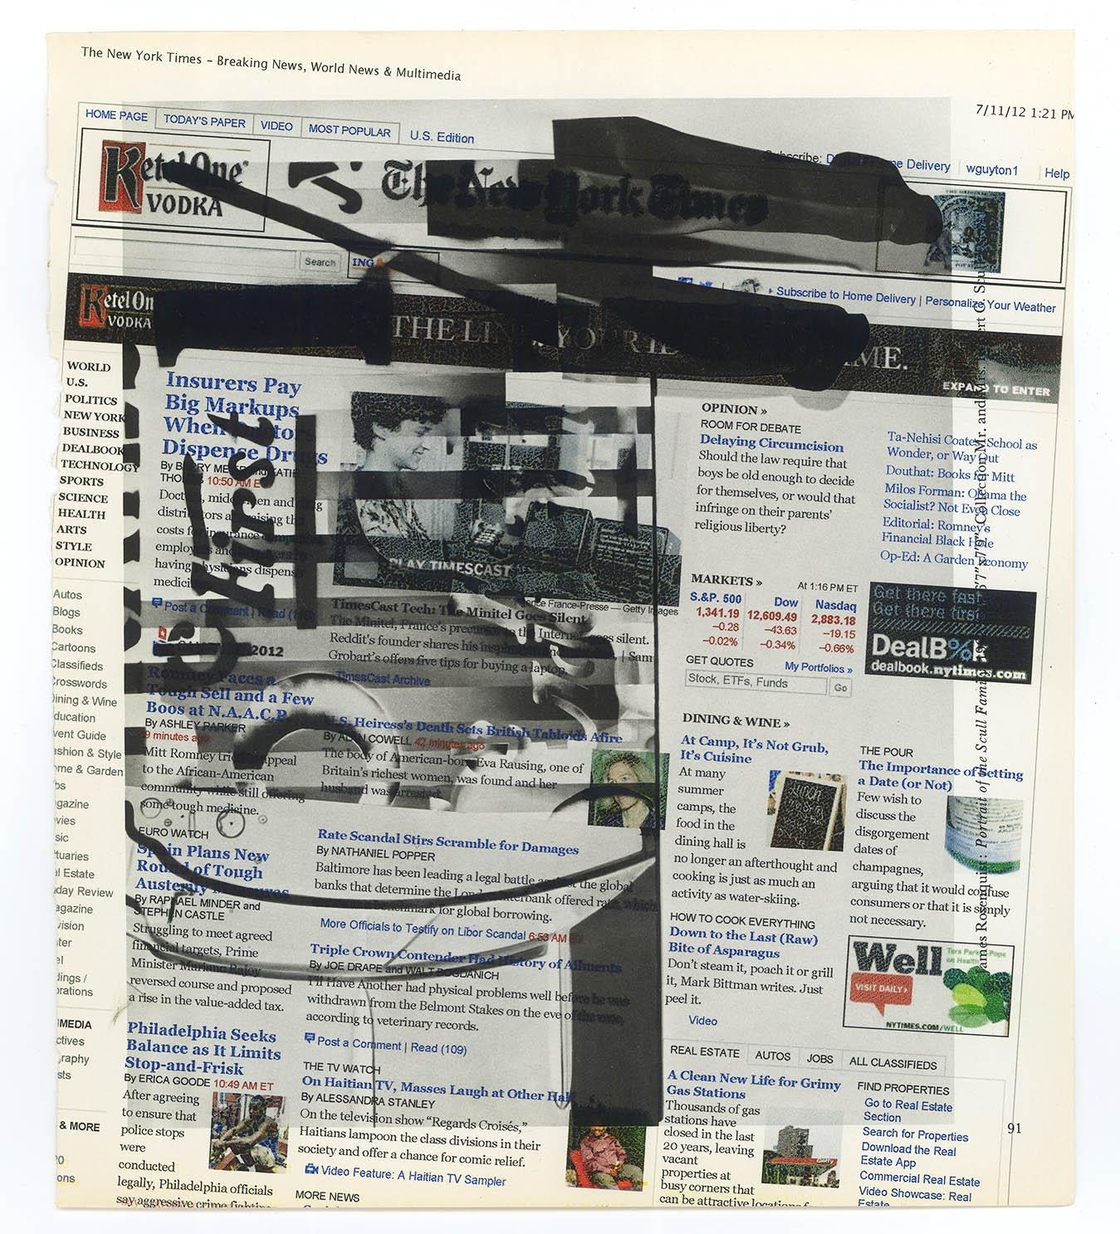 Untitled (The New York Times - Breaking News, World News & Multimedia 7/11/12 1:21 PM)